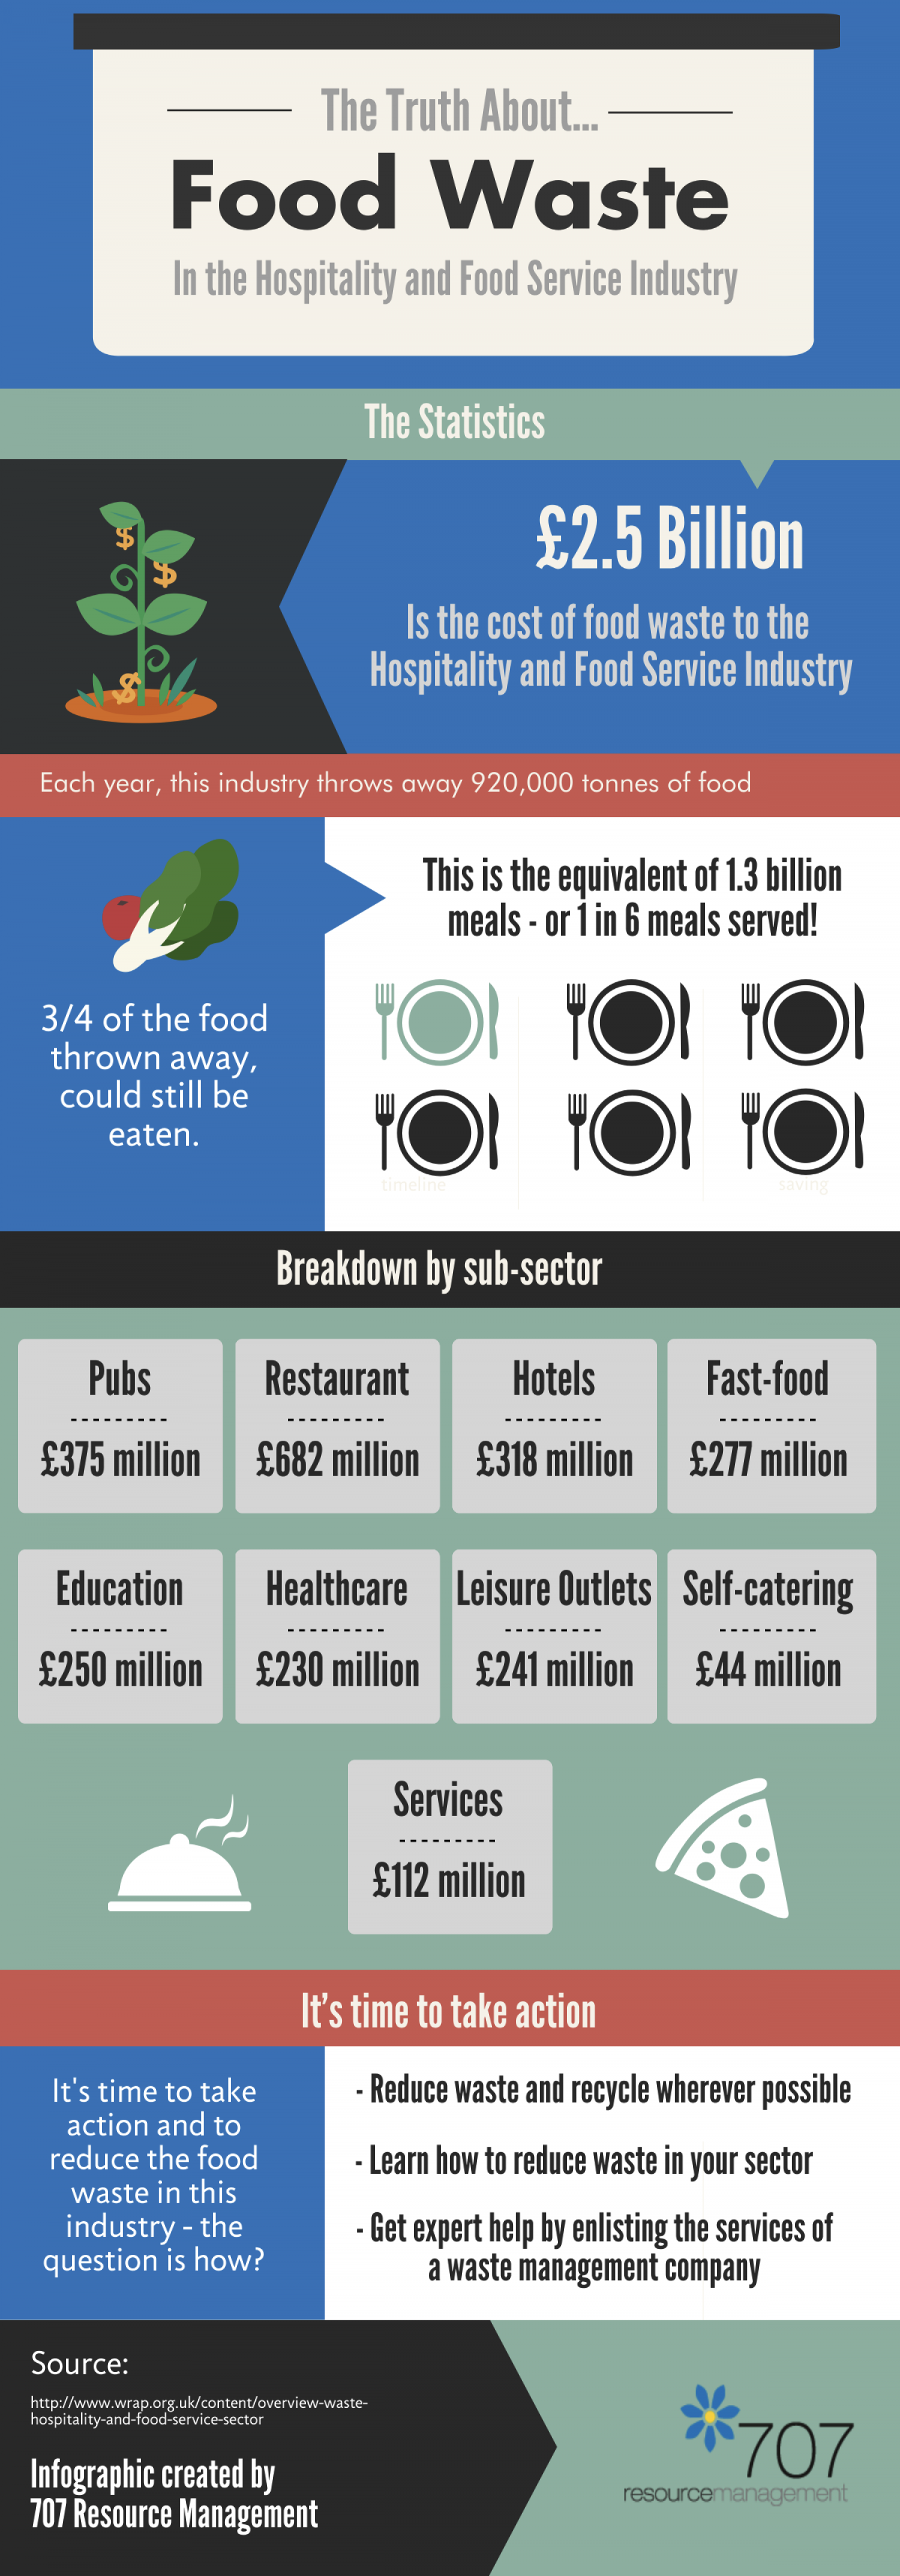 The Truth About Food Waste - Hospitality and Food Service Infographic